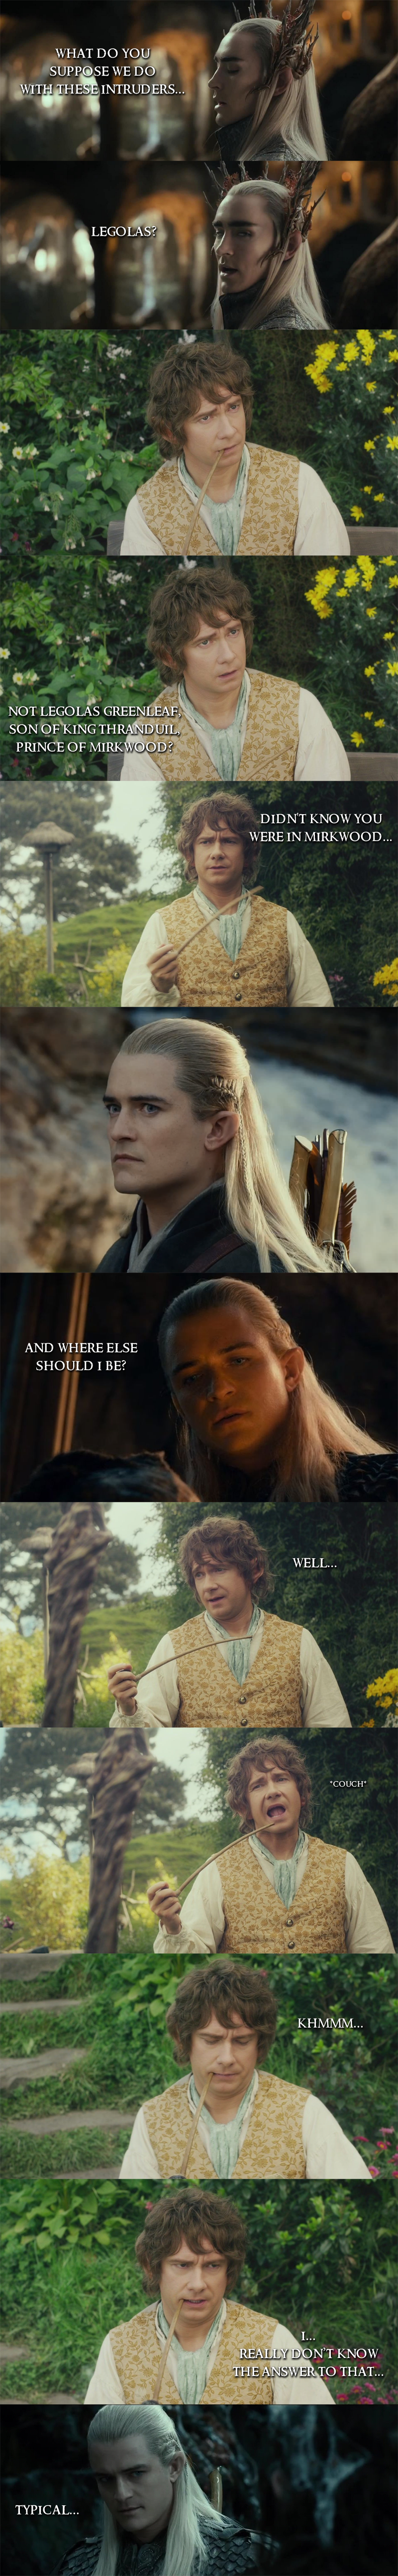 Legolas vs. Bilbo. .. There is only one place for Legolas.